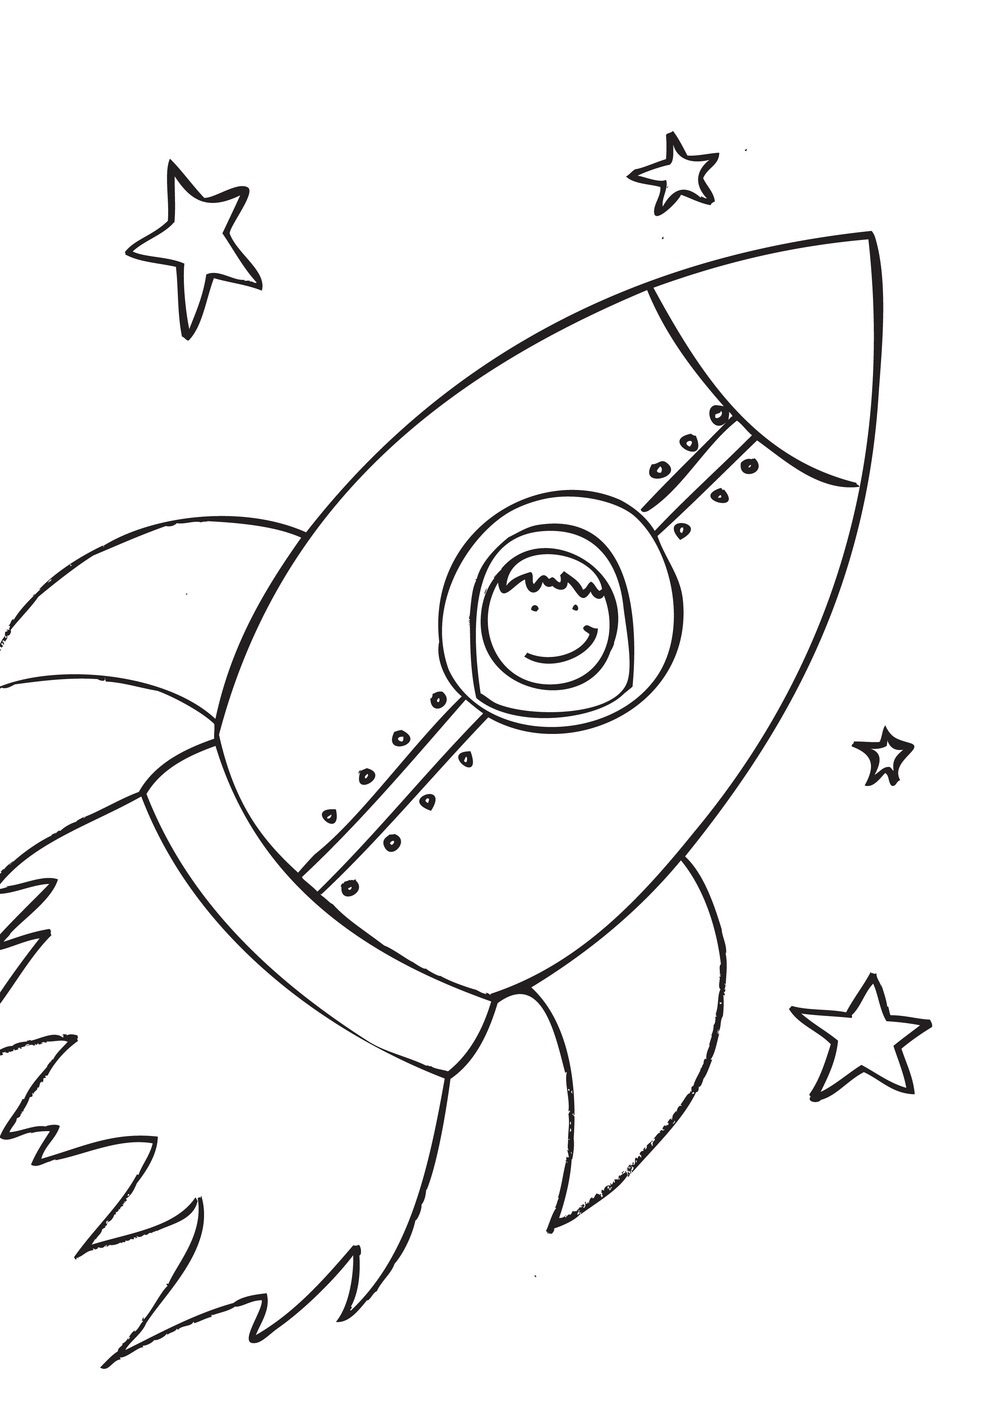 6 Images of Free Printable Rocket Ship Coloring Page